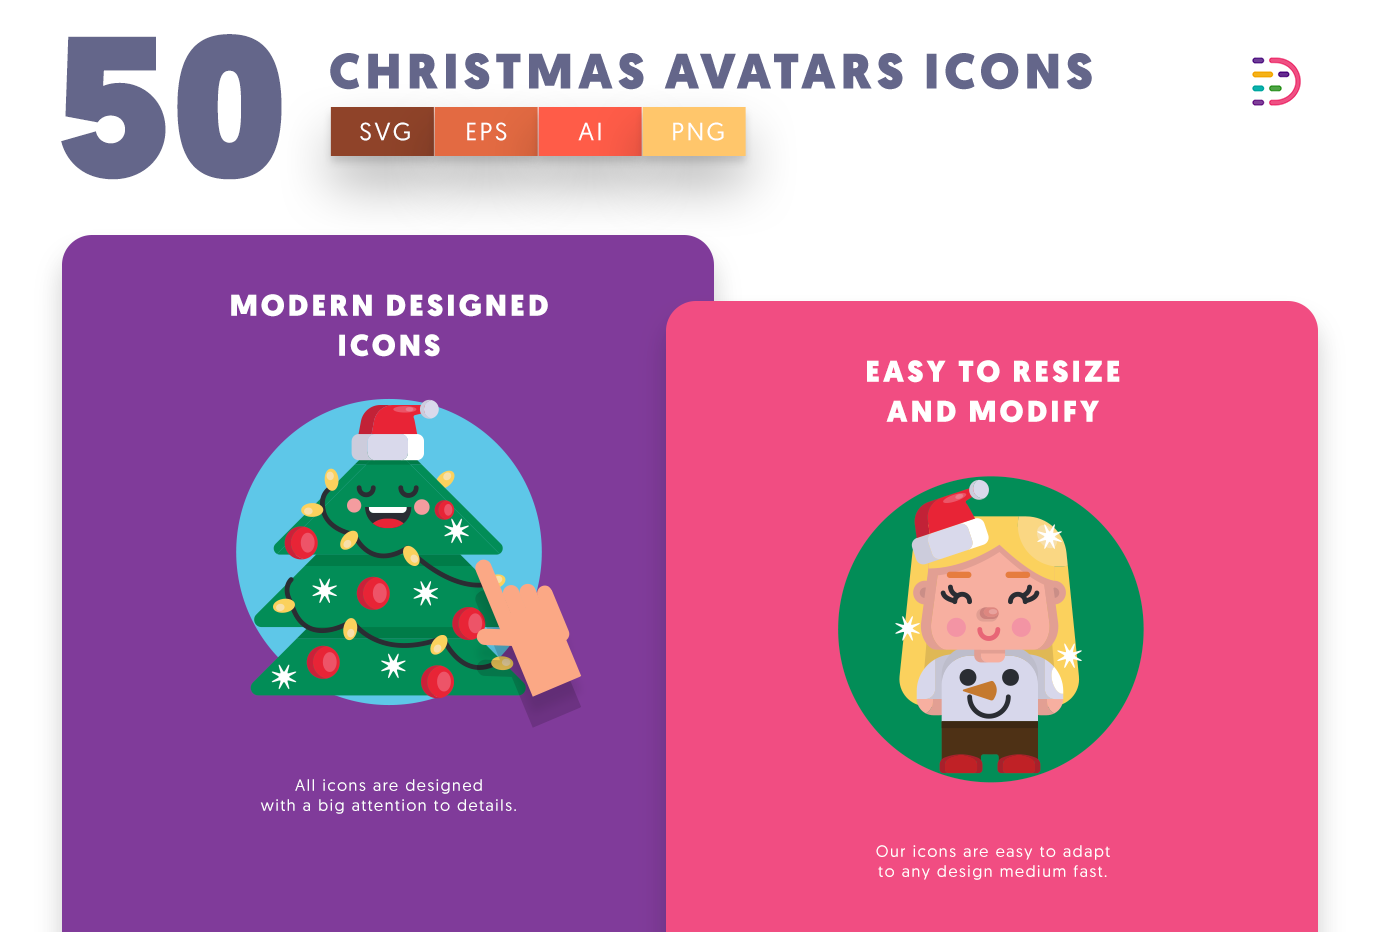 Christmas Avatars icons png/svg/eps